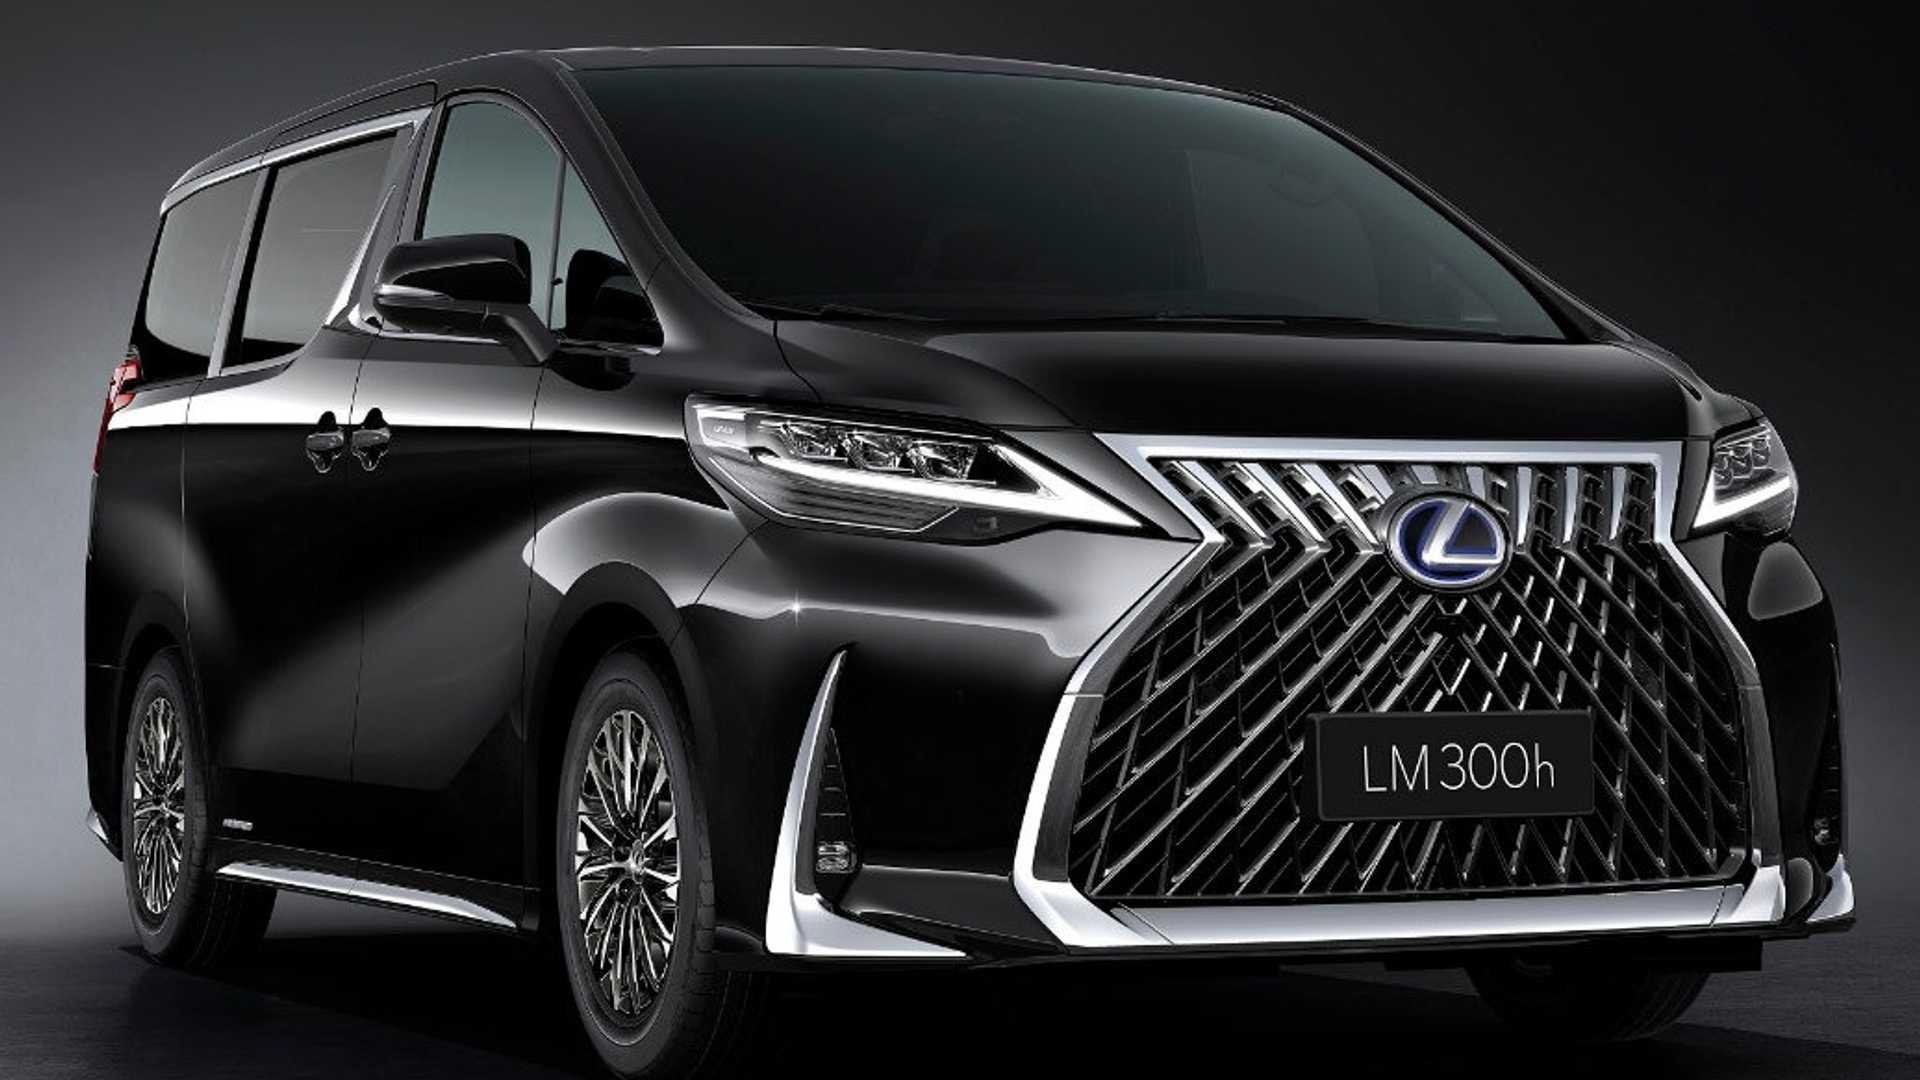 60 Gallery of Lexus Mpv 2020 Photos with Lexus Mpv 2020